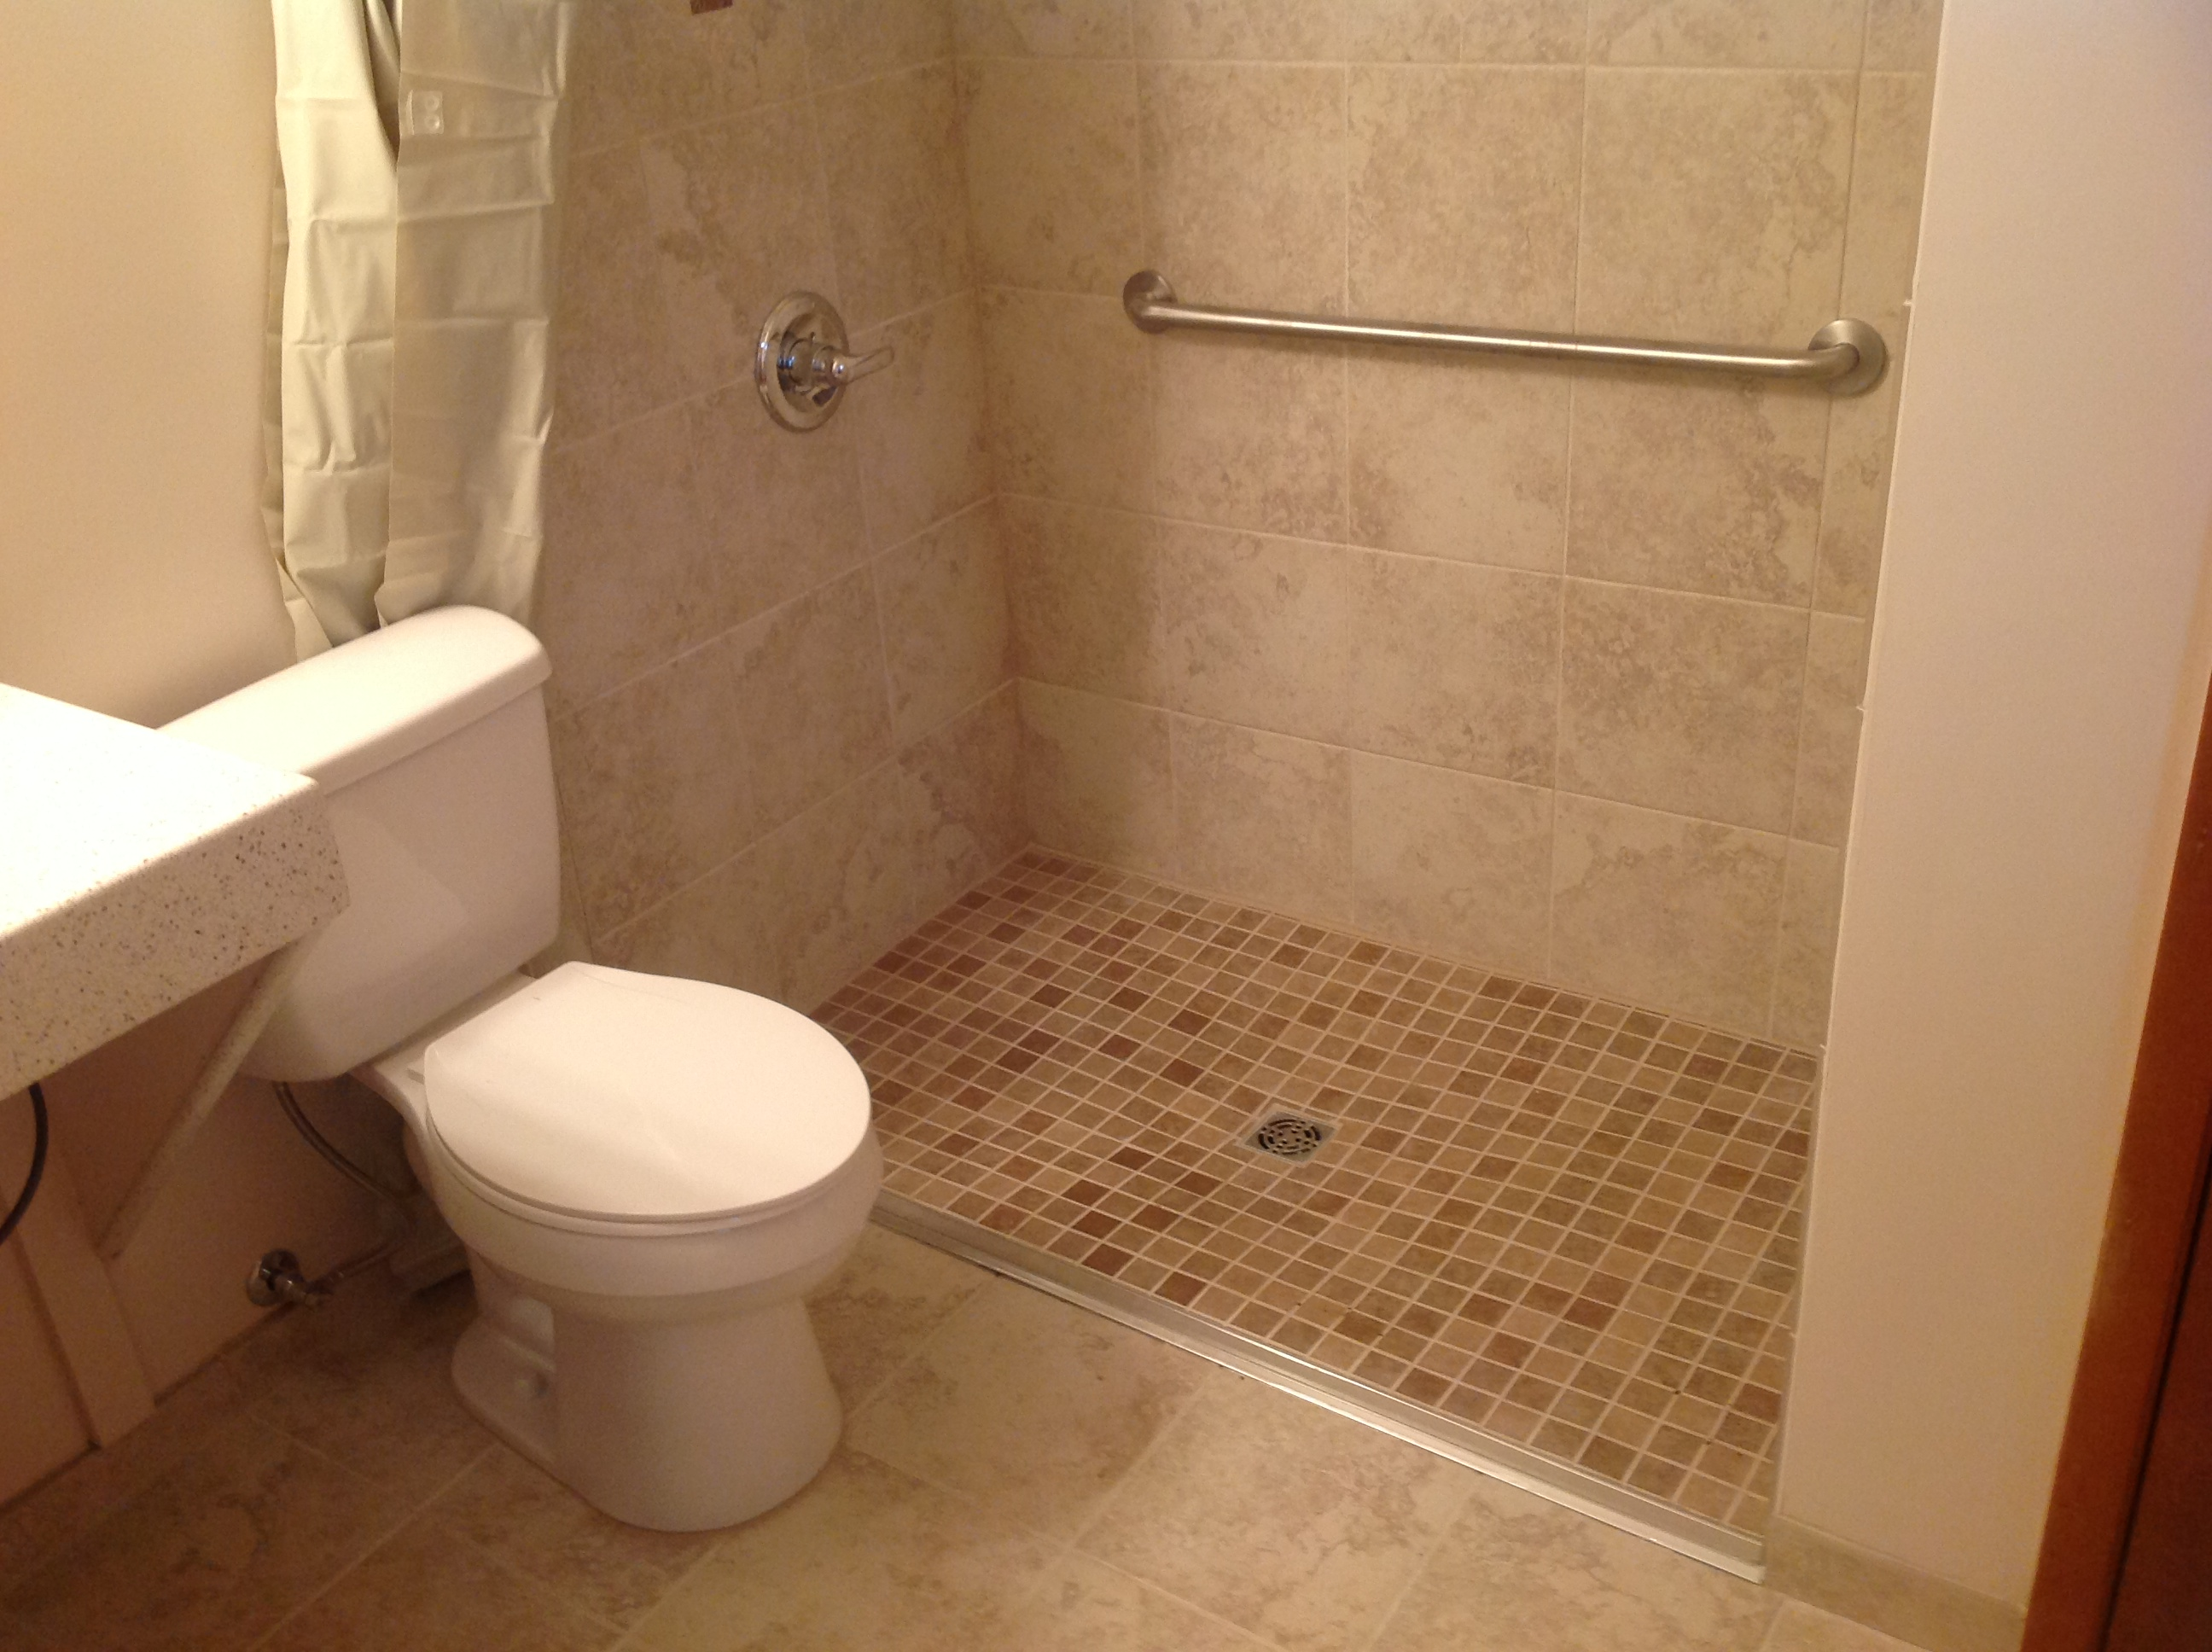 handicap accessibilityguyson constructionroofing remodel   Handicap Bathroom Designs. the elegant wheelchair accessible bathroom design intended for